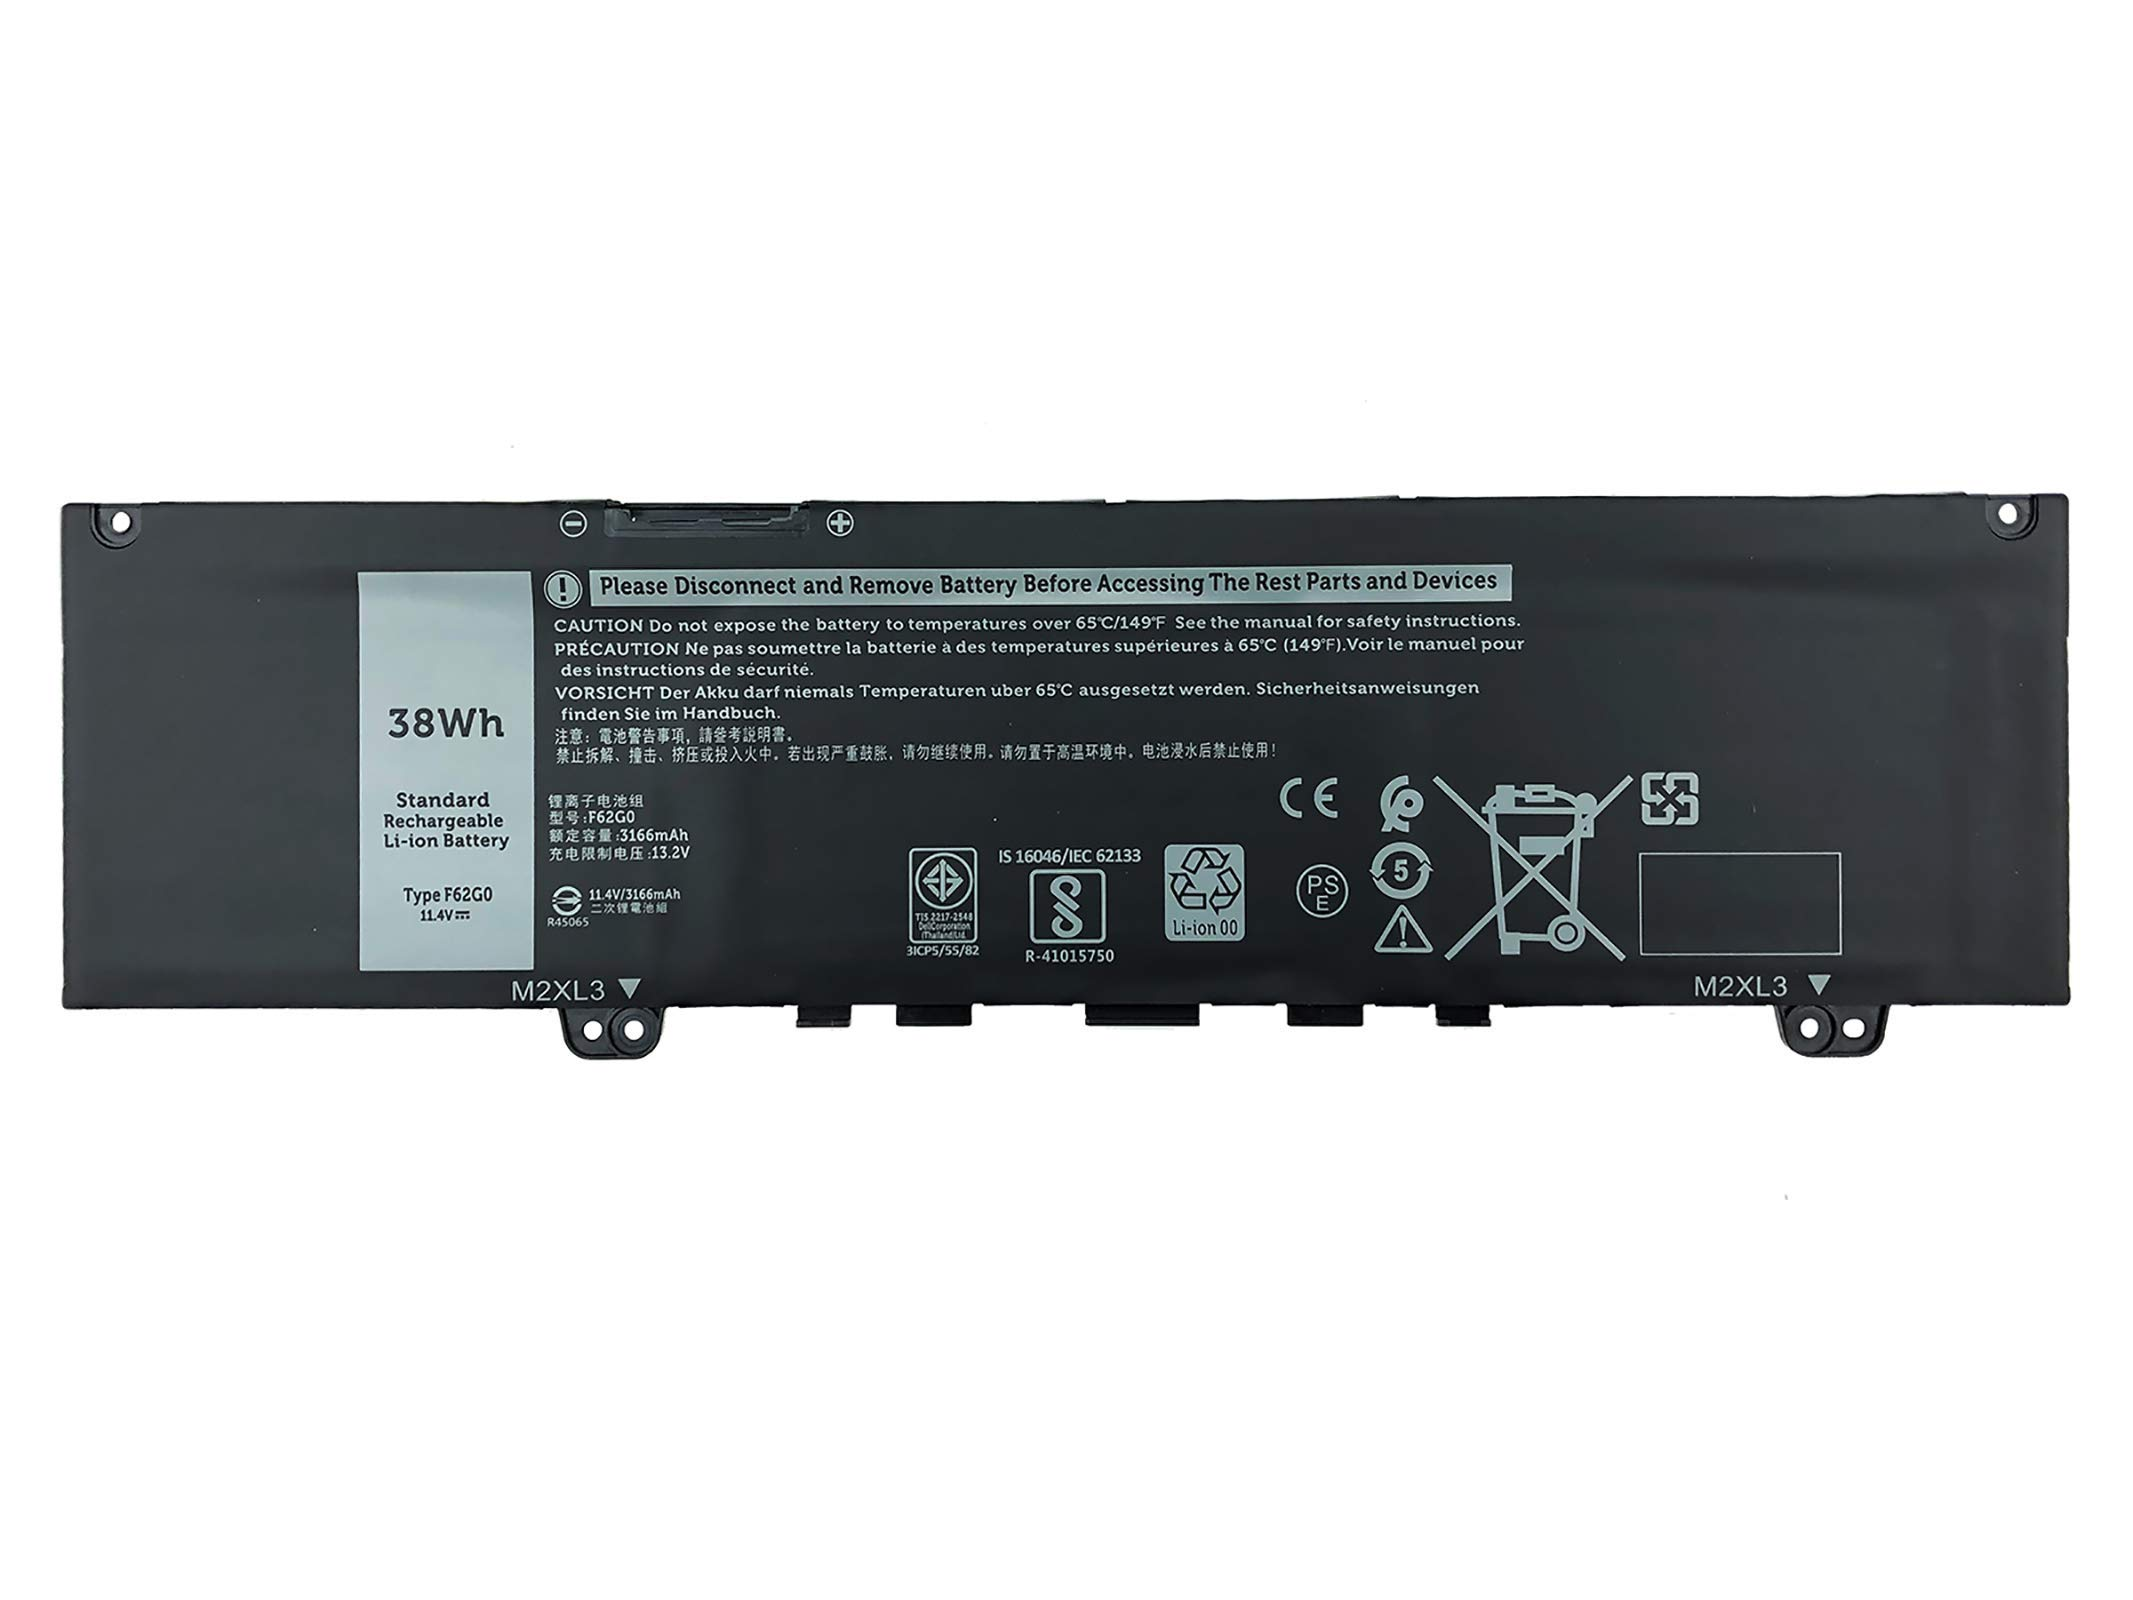 EBKK 38Wh F62G0 Battery for Dell Inspiron 13 5370 7373 7370 7380 7386 2-in-1 P83G P83G001 P83G002 P87G001 P83G002 P87G Vostro 13-5370-D1505G R1605S D1525S D1605S Series F62GO CHA01 RPJC3 39DY5